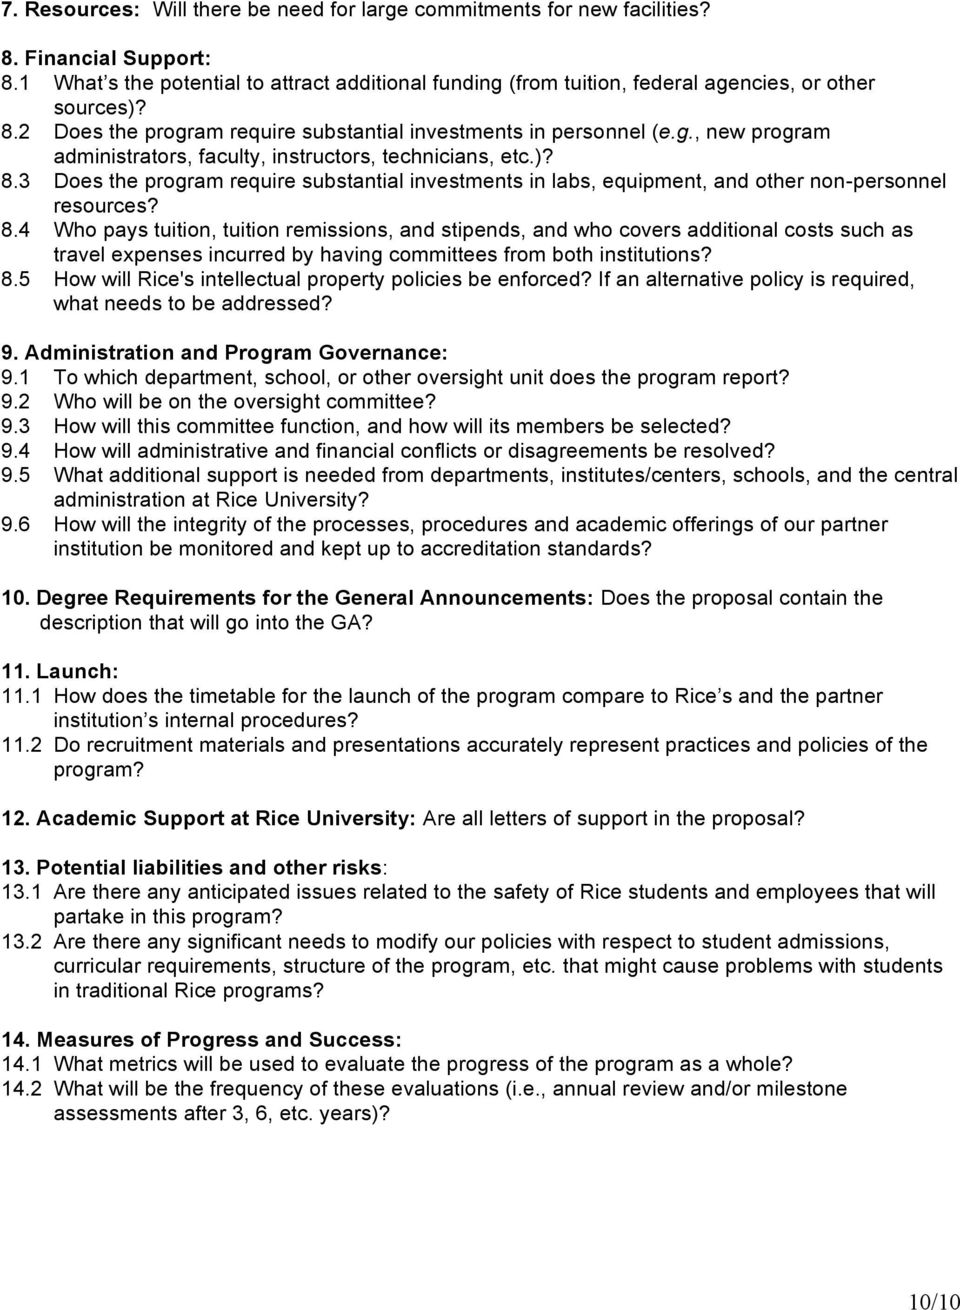 )? 8.3 Does the program require substantial investments in labs, equipment, and other non-personnel resources? 8.4 Who pays tuition, tuition remissions, and stipends, and who covers additional costs such as travel expenses incurred by having committees from both institutions?